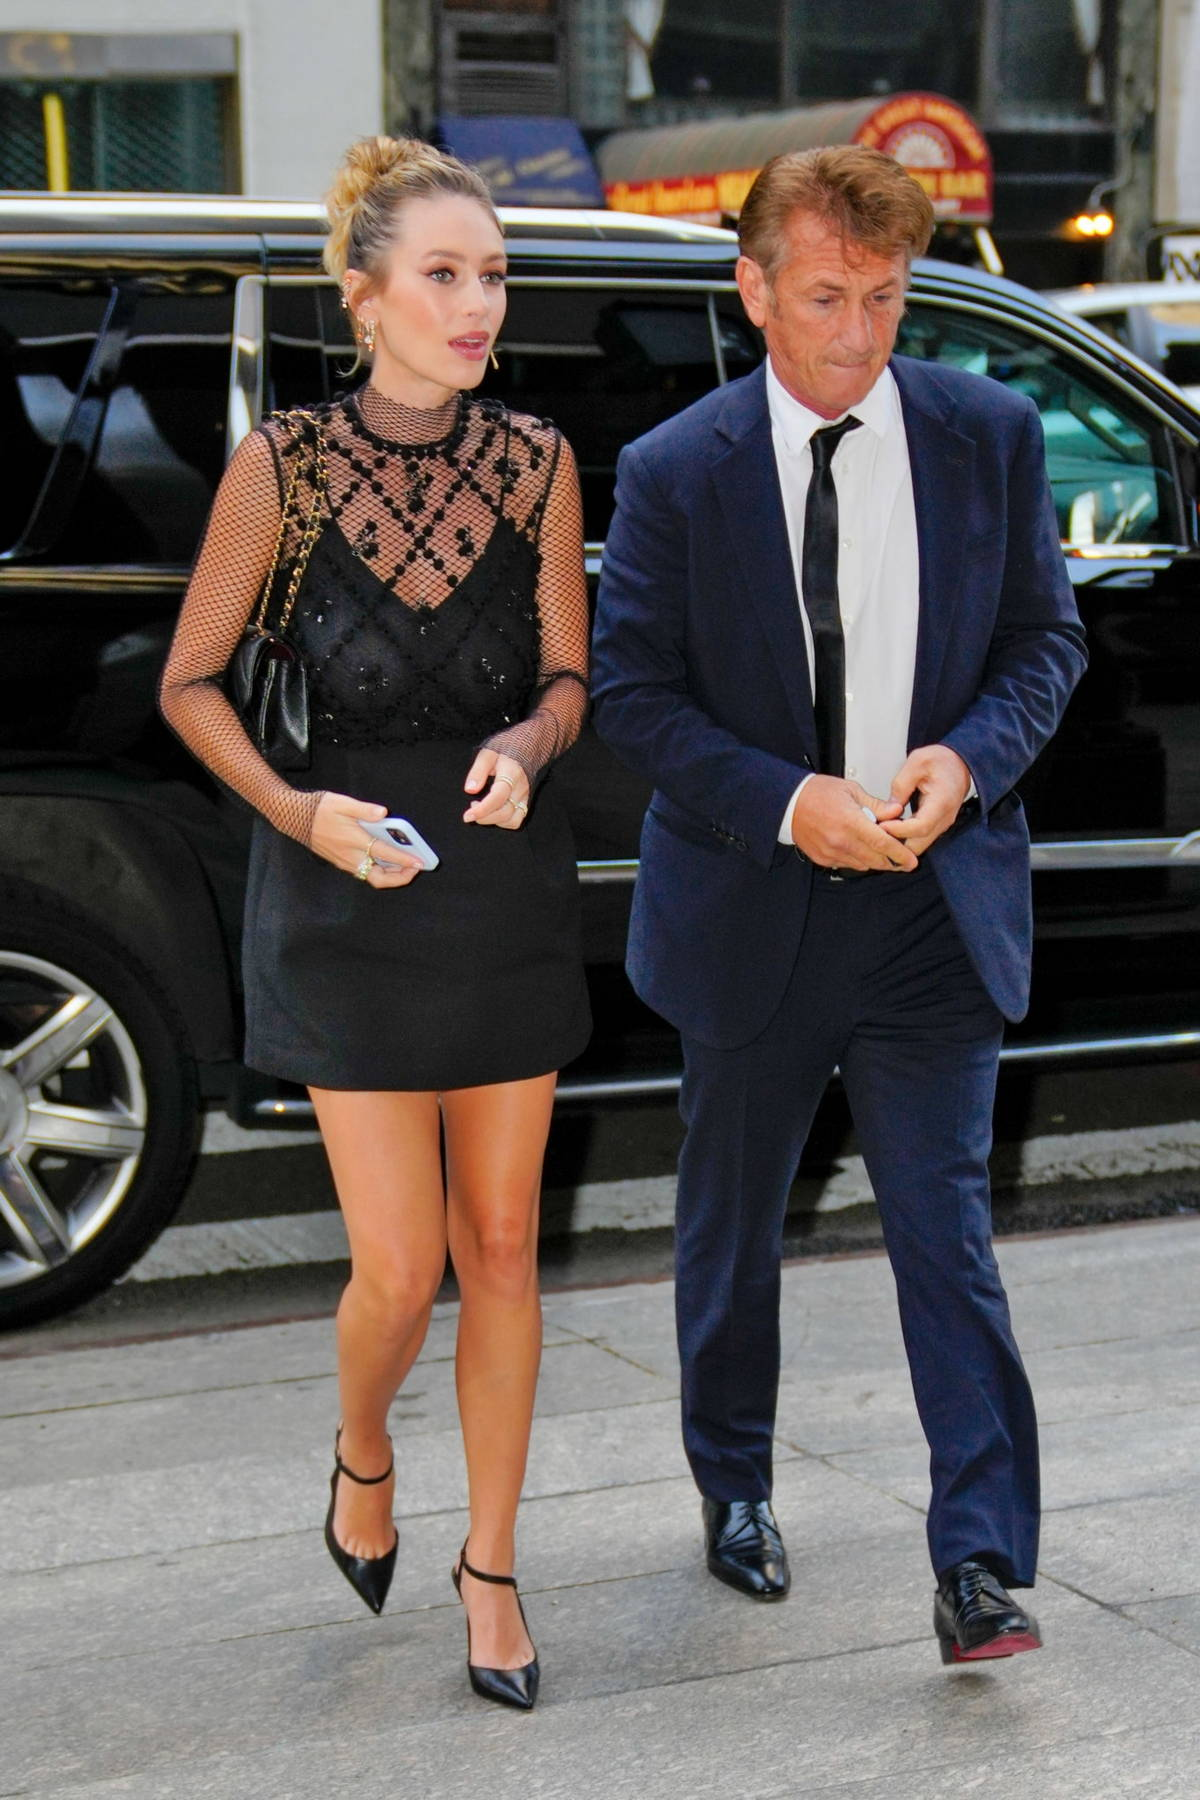 Dylan Penn and Sean Penn visit the Late Show with Stephen Colbert in New York City